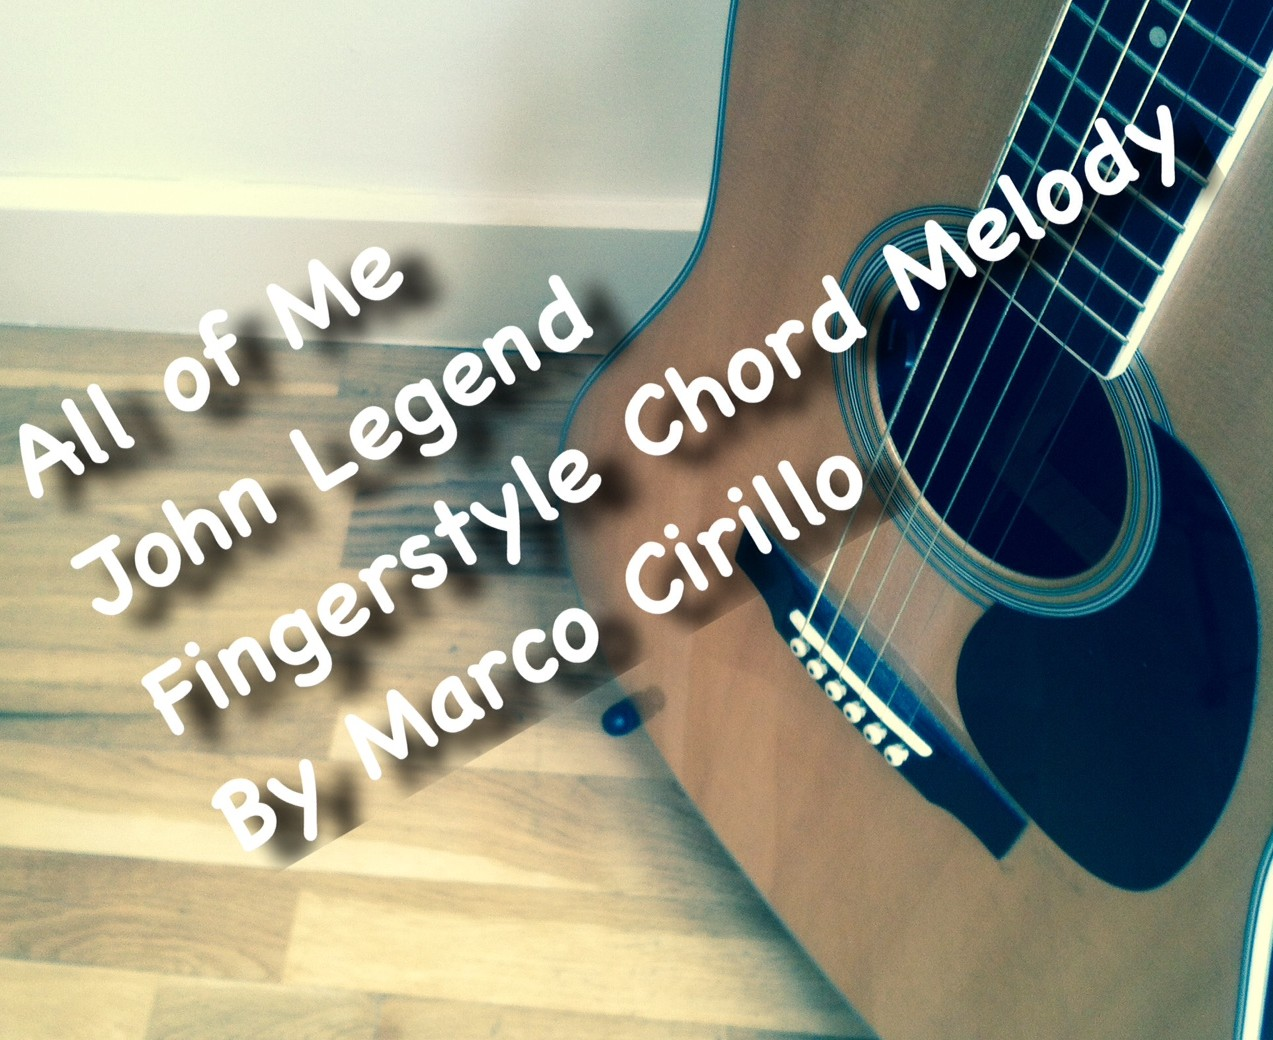 John Legend All of Me Guitar Lesson Fingerstyle and Chords Melody u2013 Marco Cirillo London Guitar ...